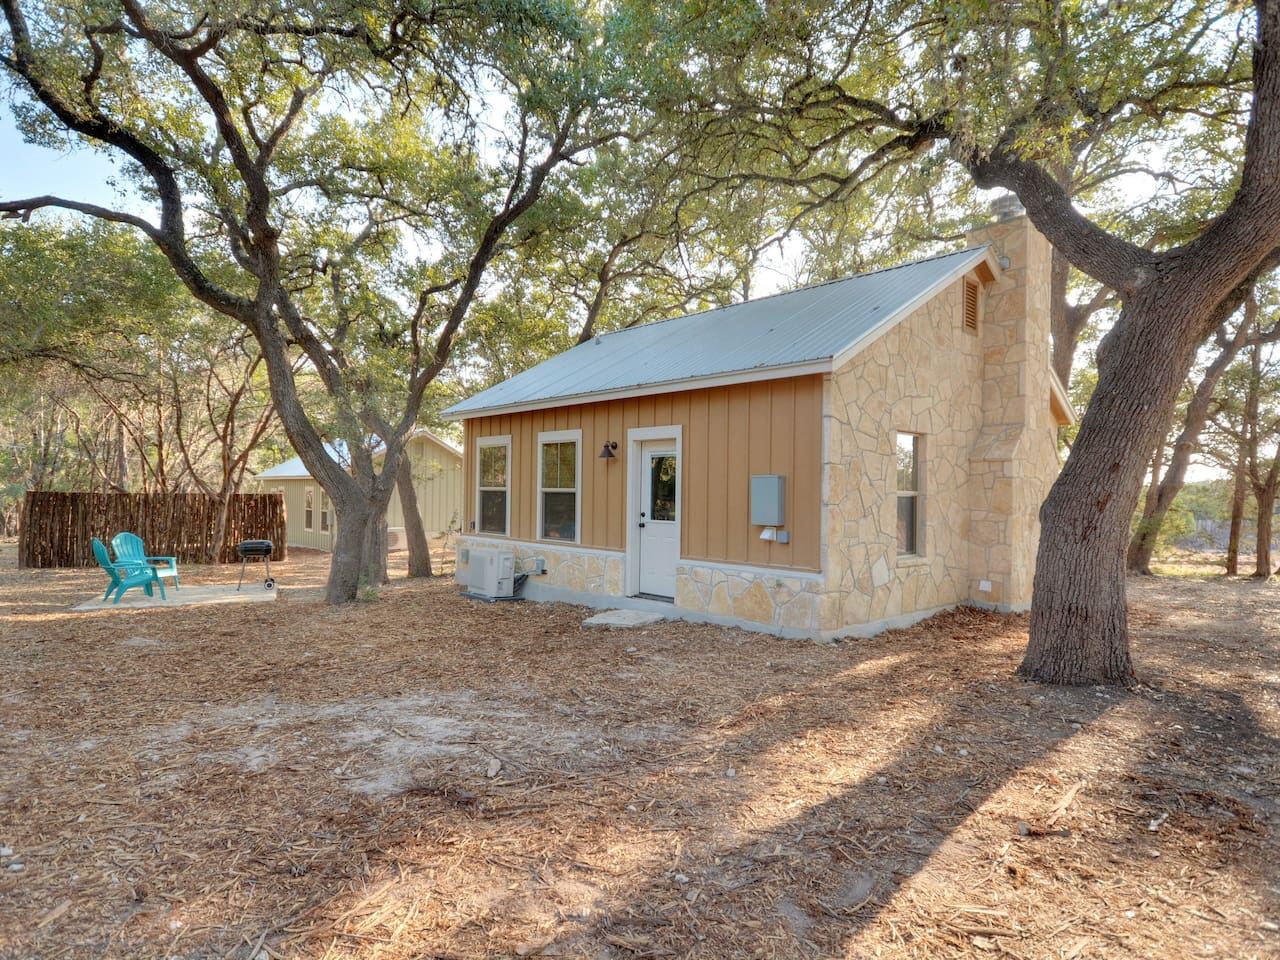 more texas park casual cottages on find pin gallery wimberley this and home model